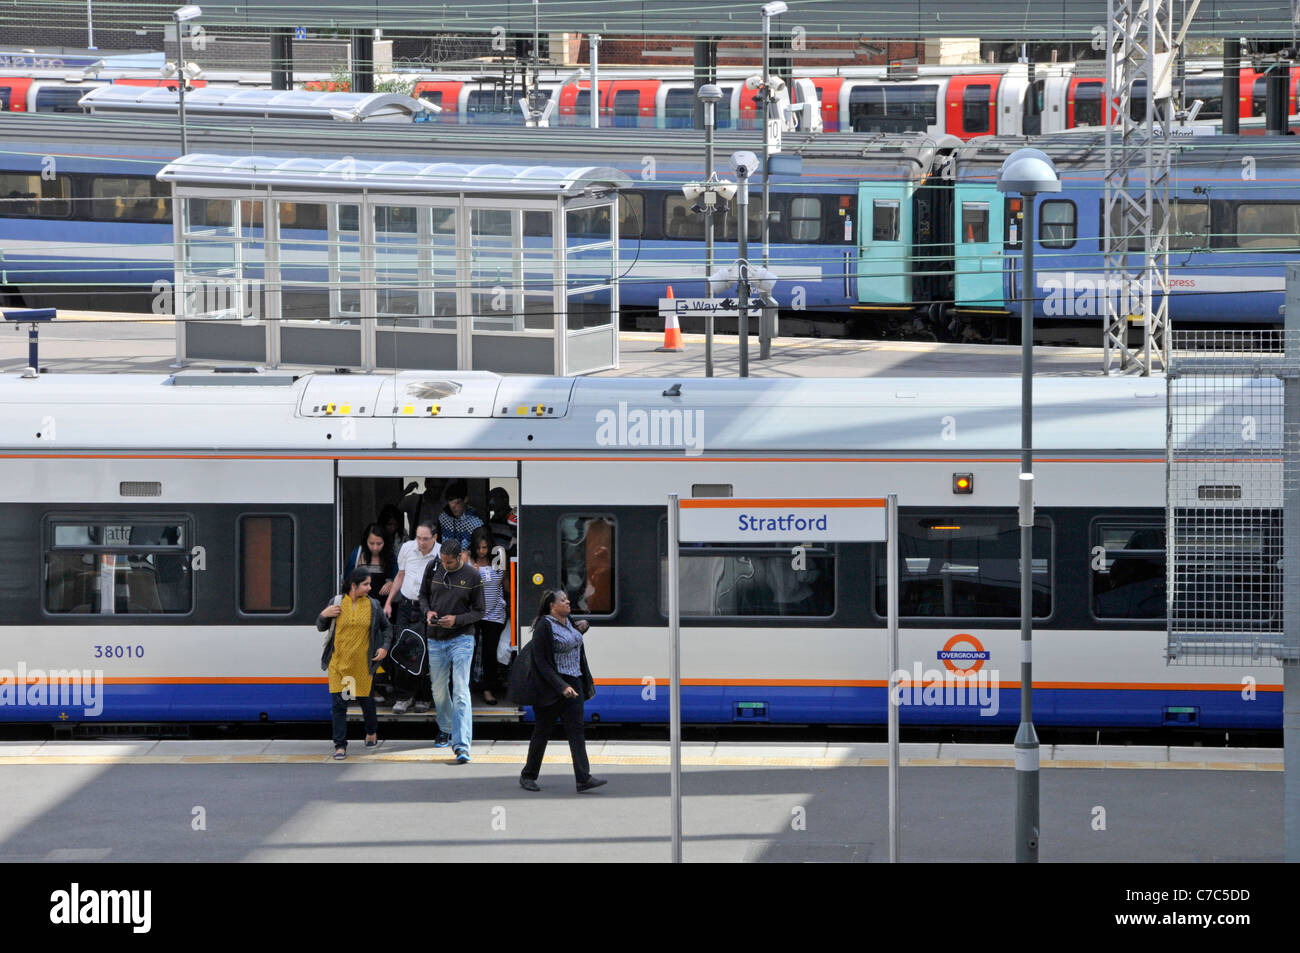 Public transport view from above looking down on Stratford London railway station commuters arriving at platform - Stock Image